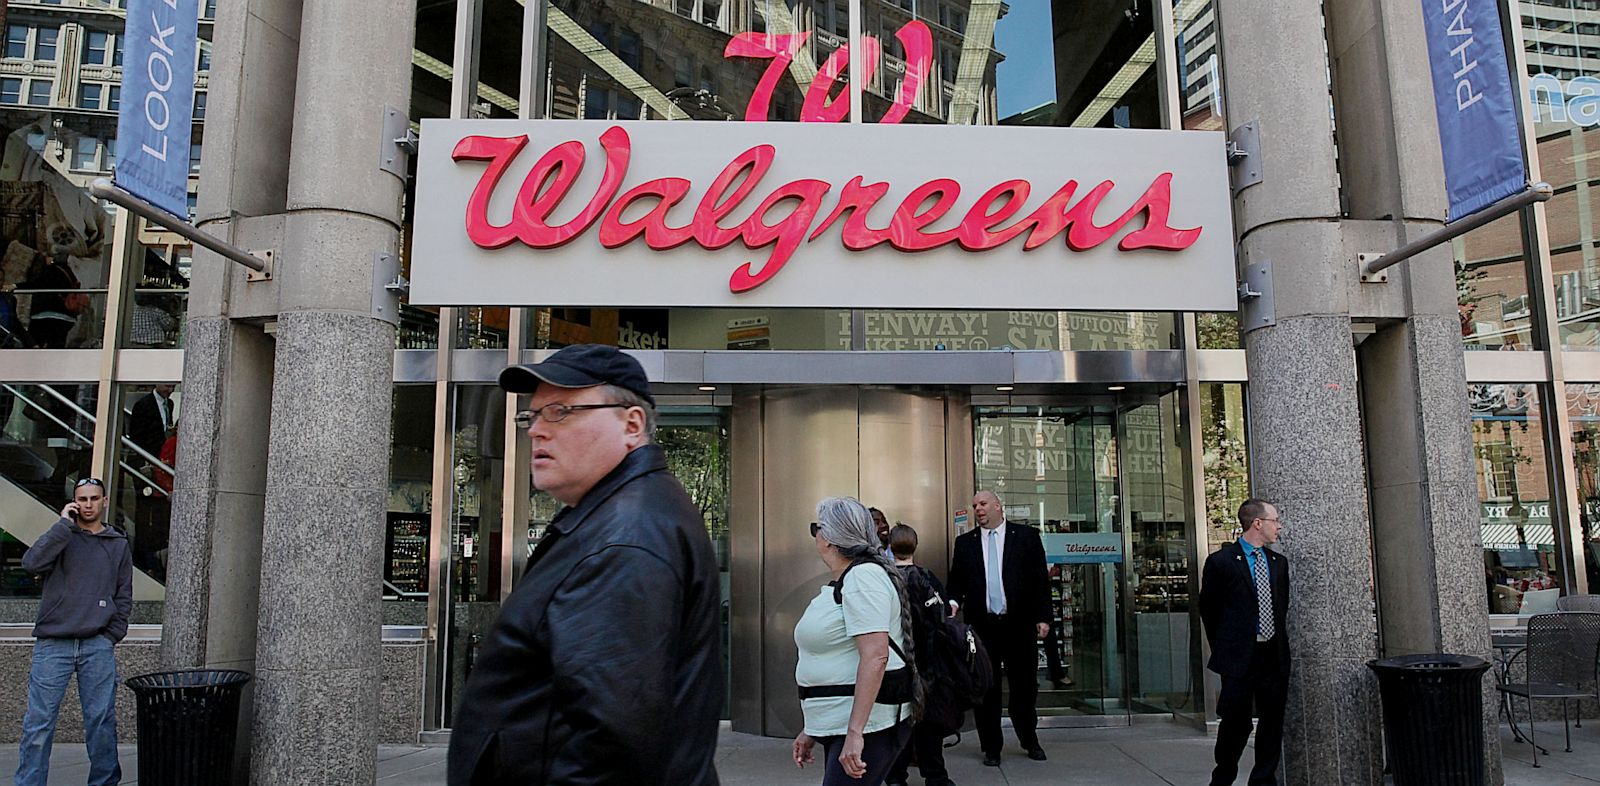 PHOTO: Walgreens To Offer Private Health Coverage